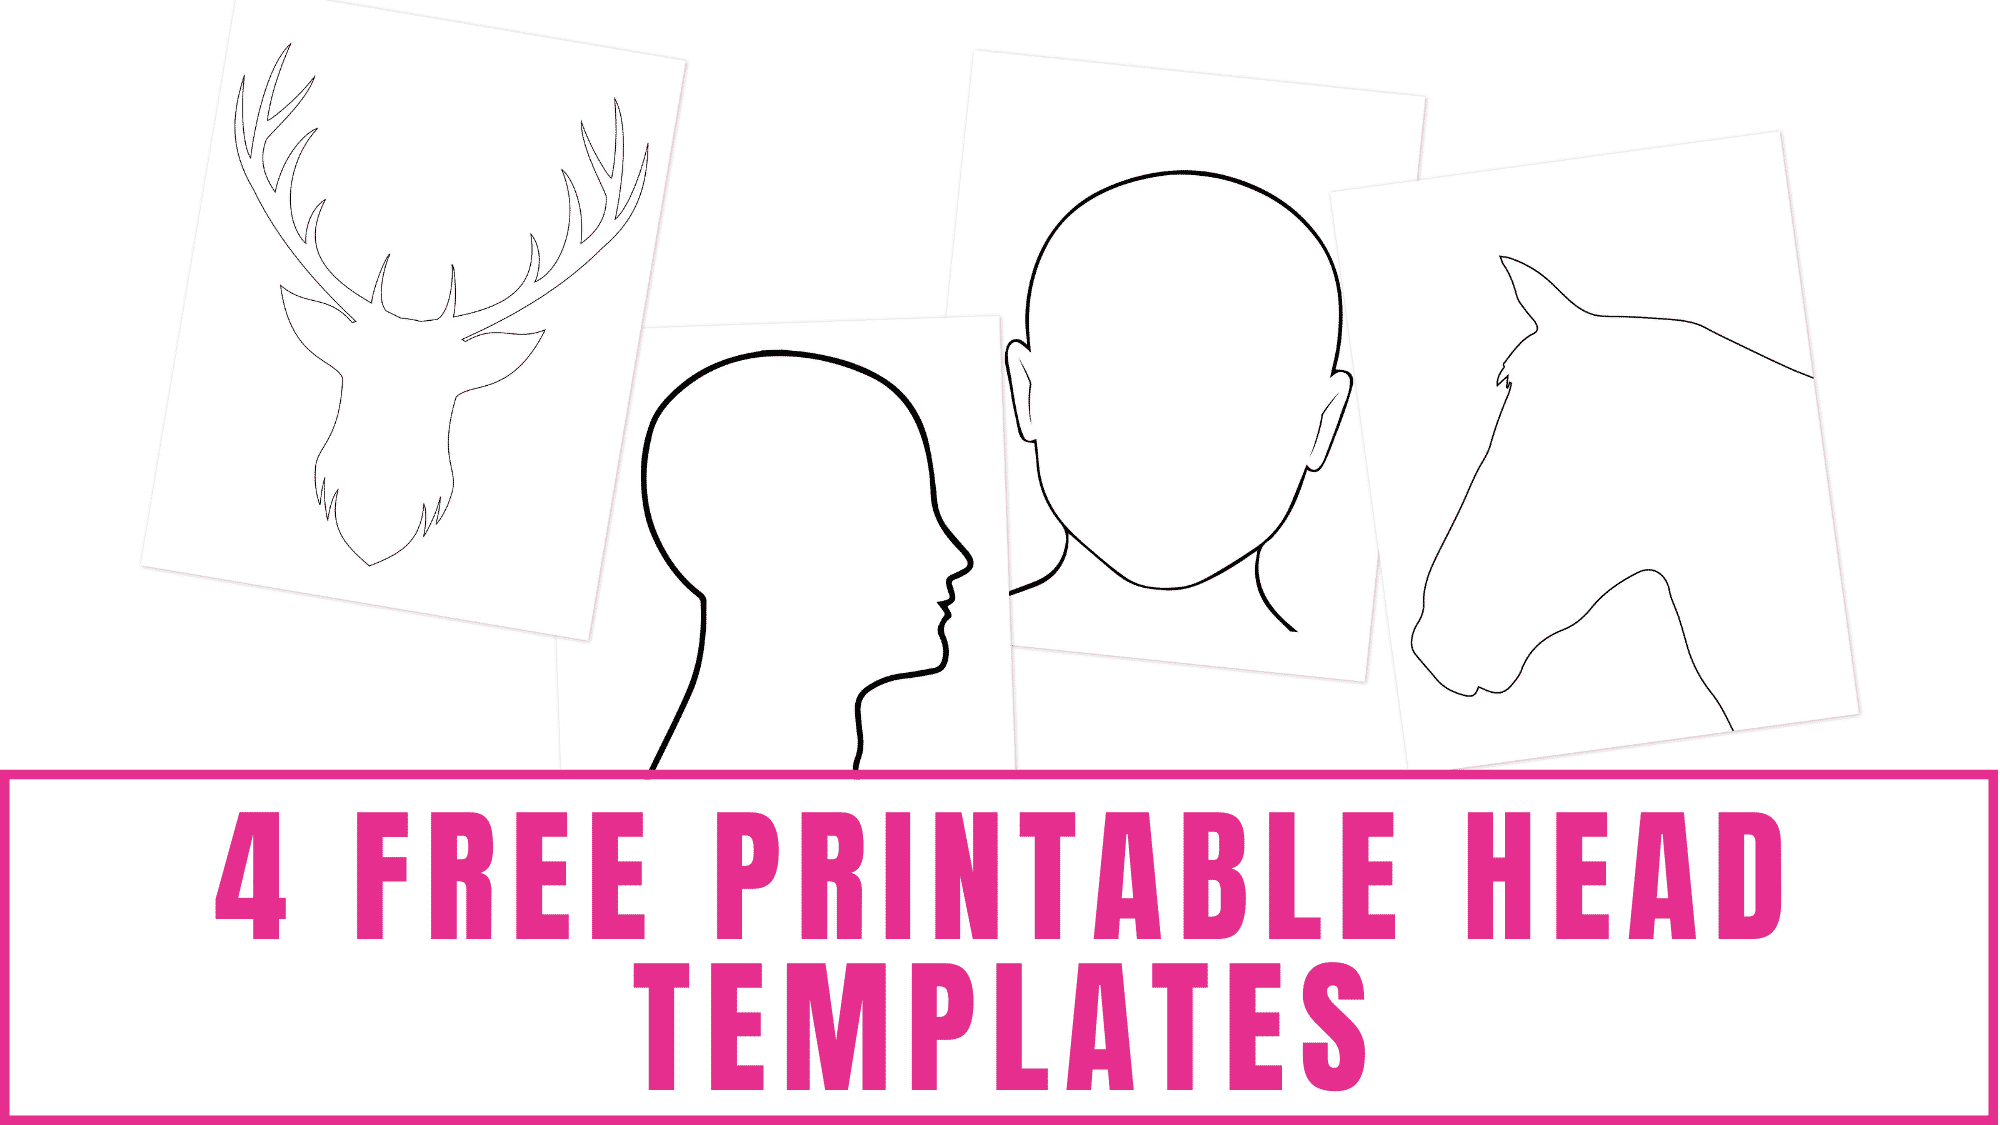 These are four free printable head templates of a human head (front facing), human head (side profile), deer head, and horse head.